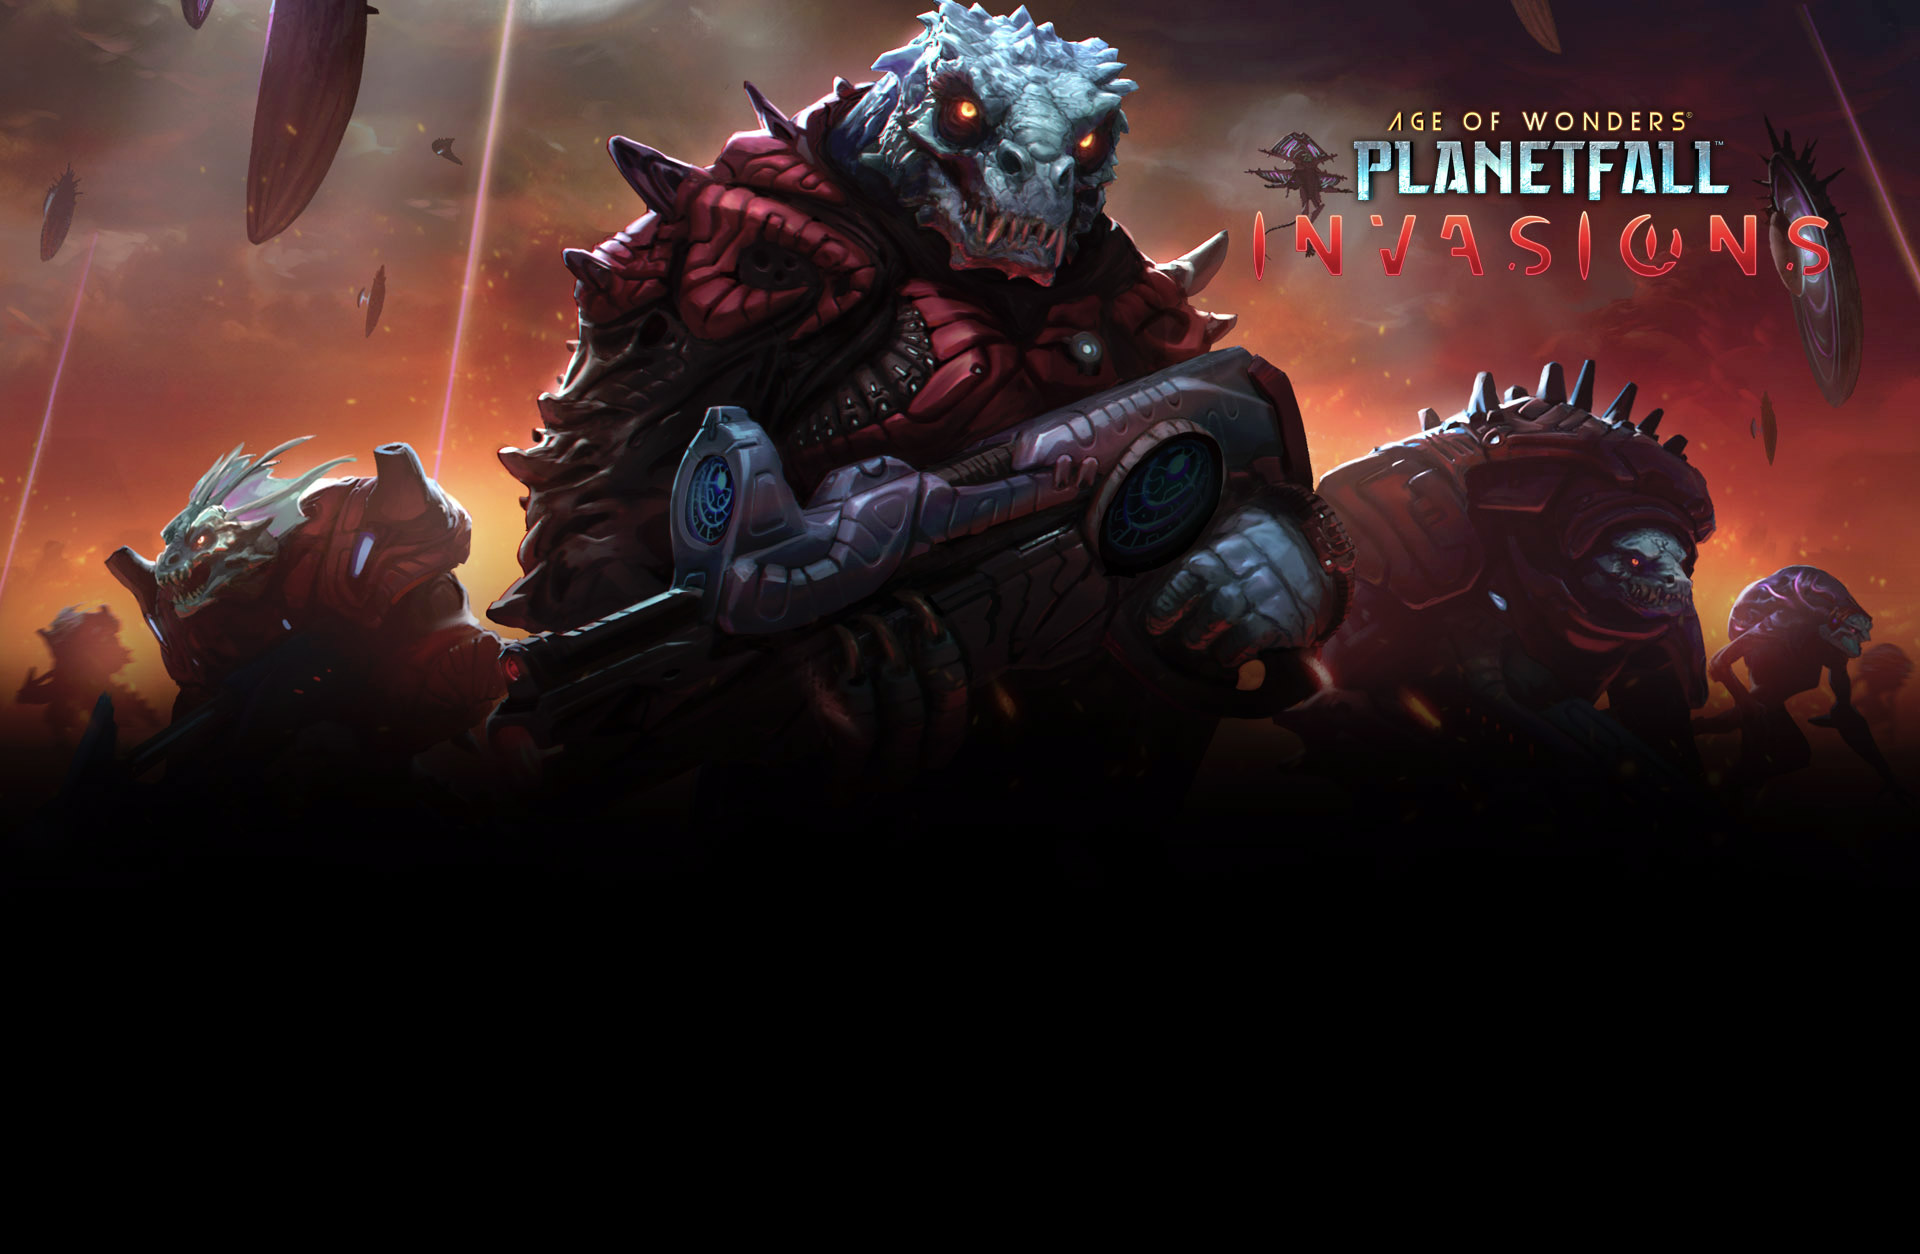 Age of Wonders: Planetfall Invasions